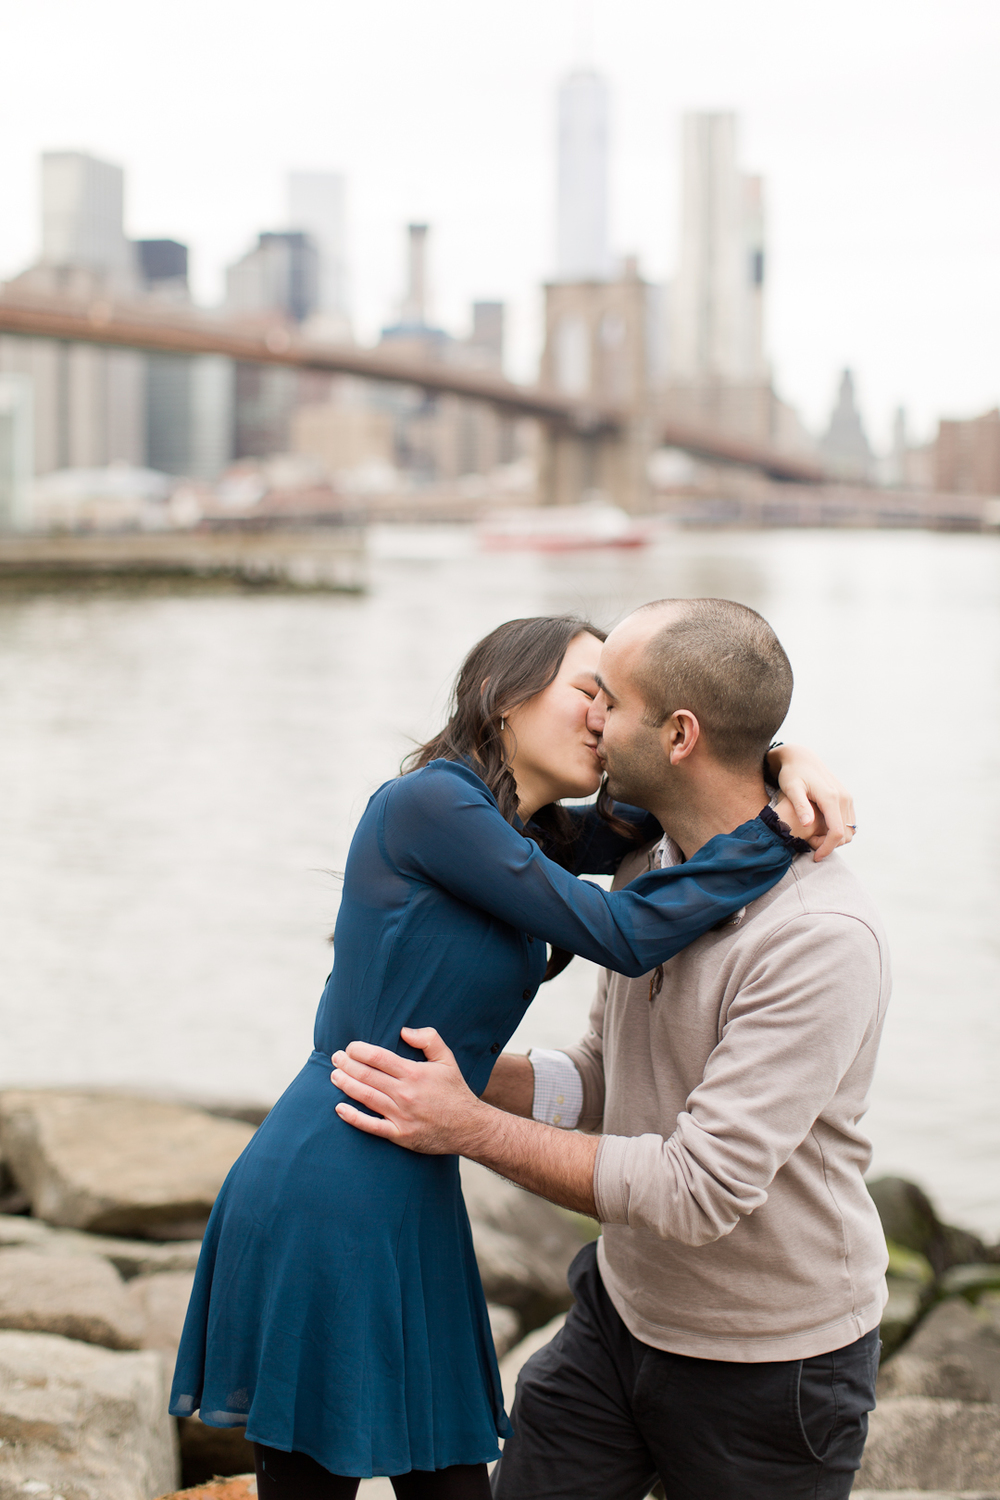 Melissa Kruse Photography - Kristine & David Engagement Photos-8.jpg